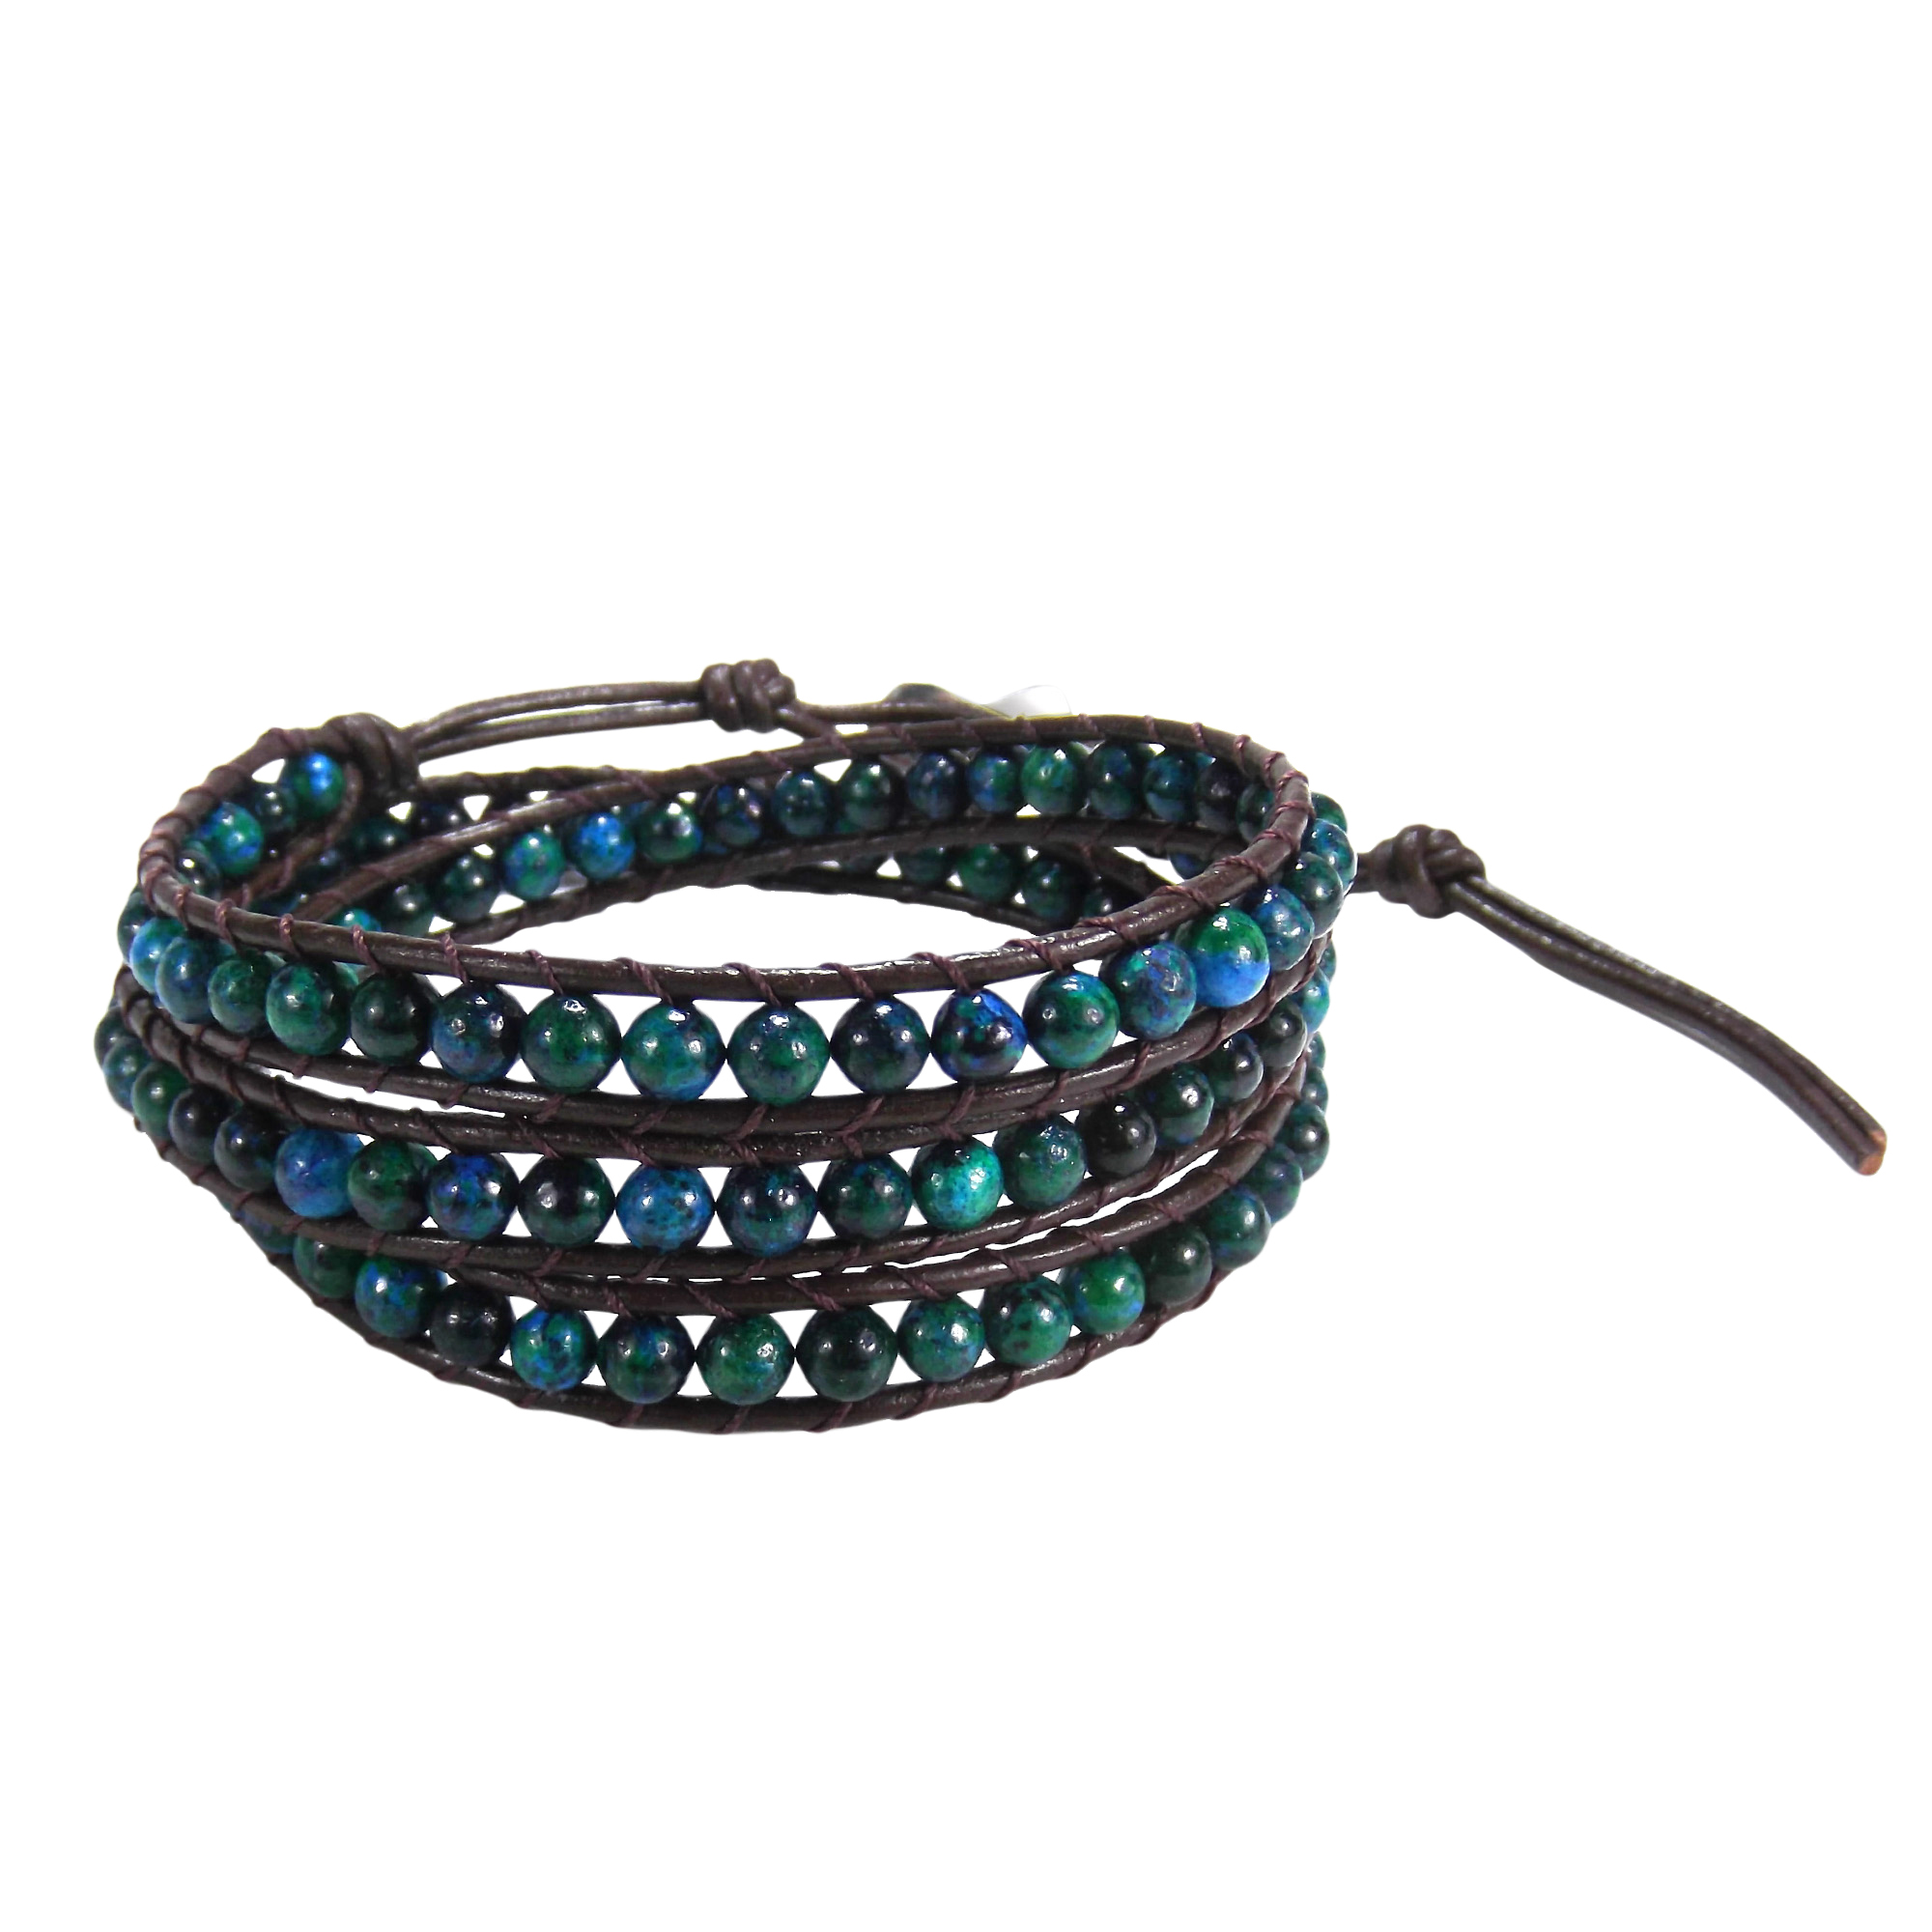 93da0b554cf5 Blue Green Muse Malachite Gemstone Tribal Wrap Leather Bracelet ...